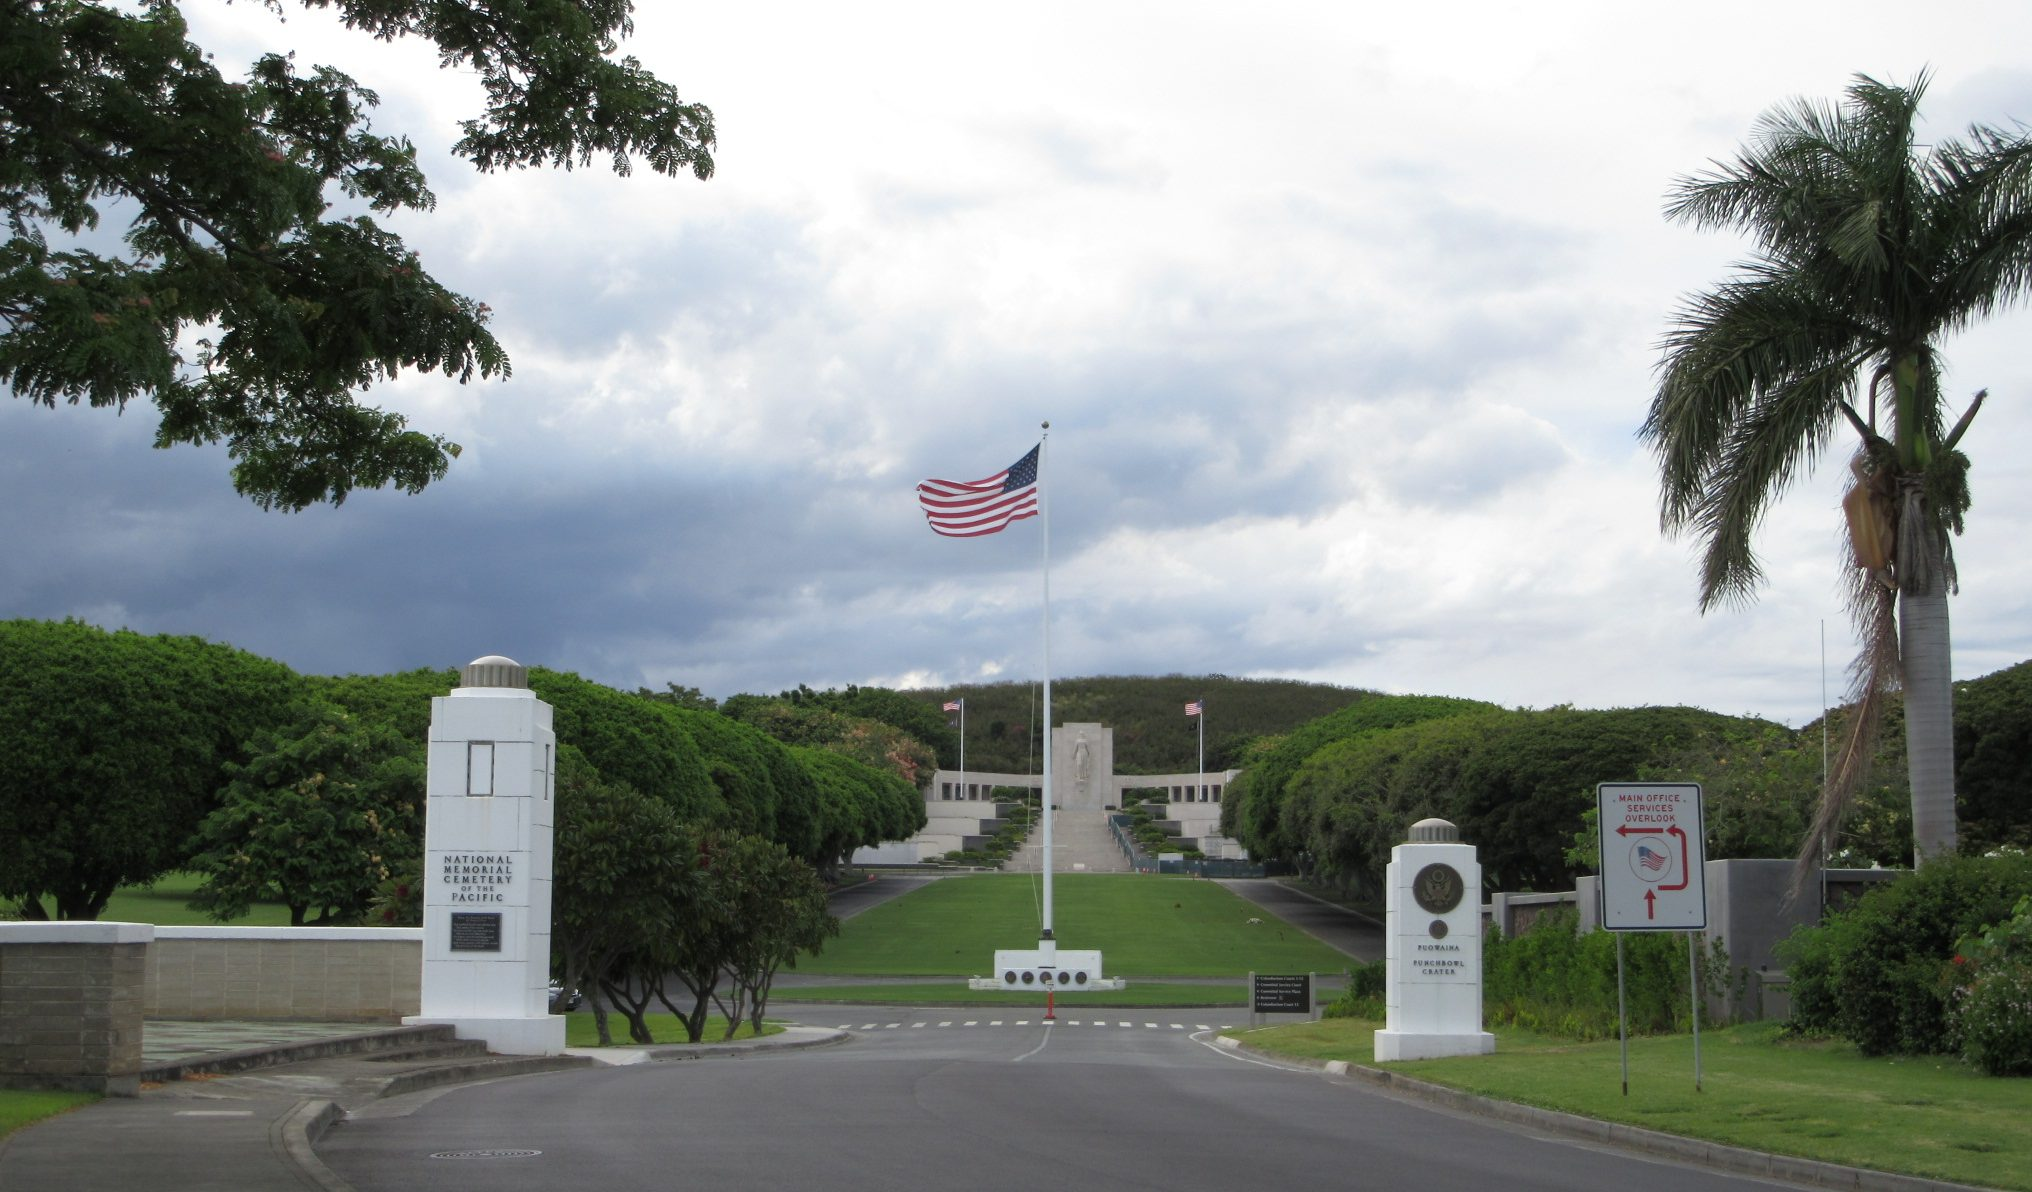 国立太平洋記念墓地  National Memorial Cemetery of The Pacific